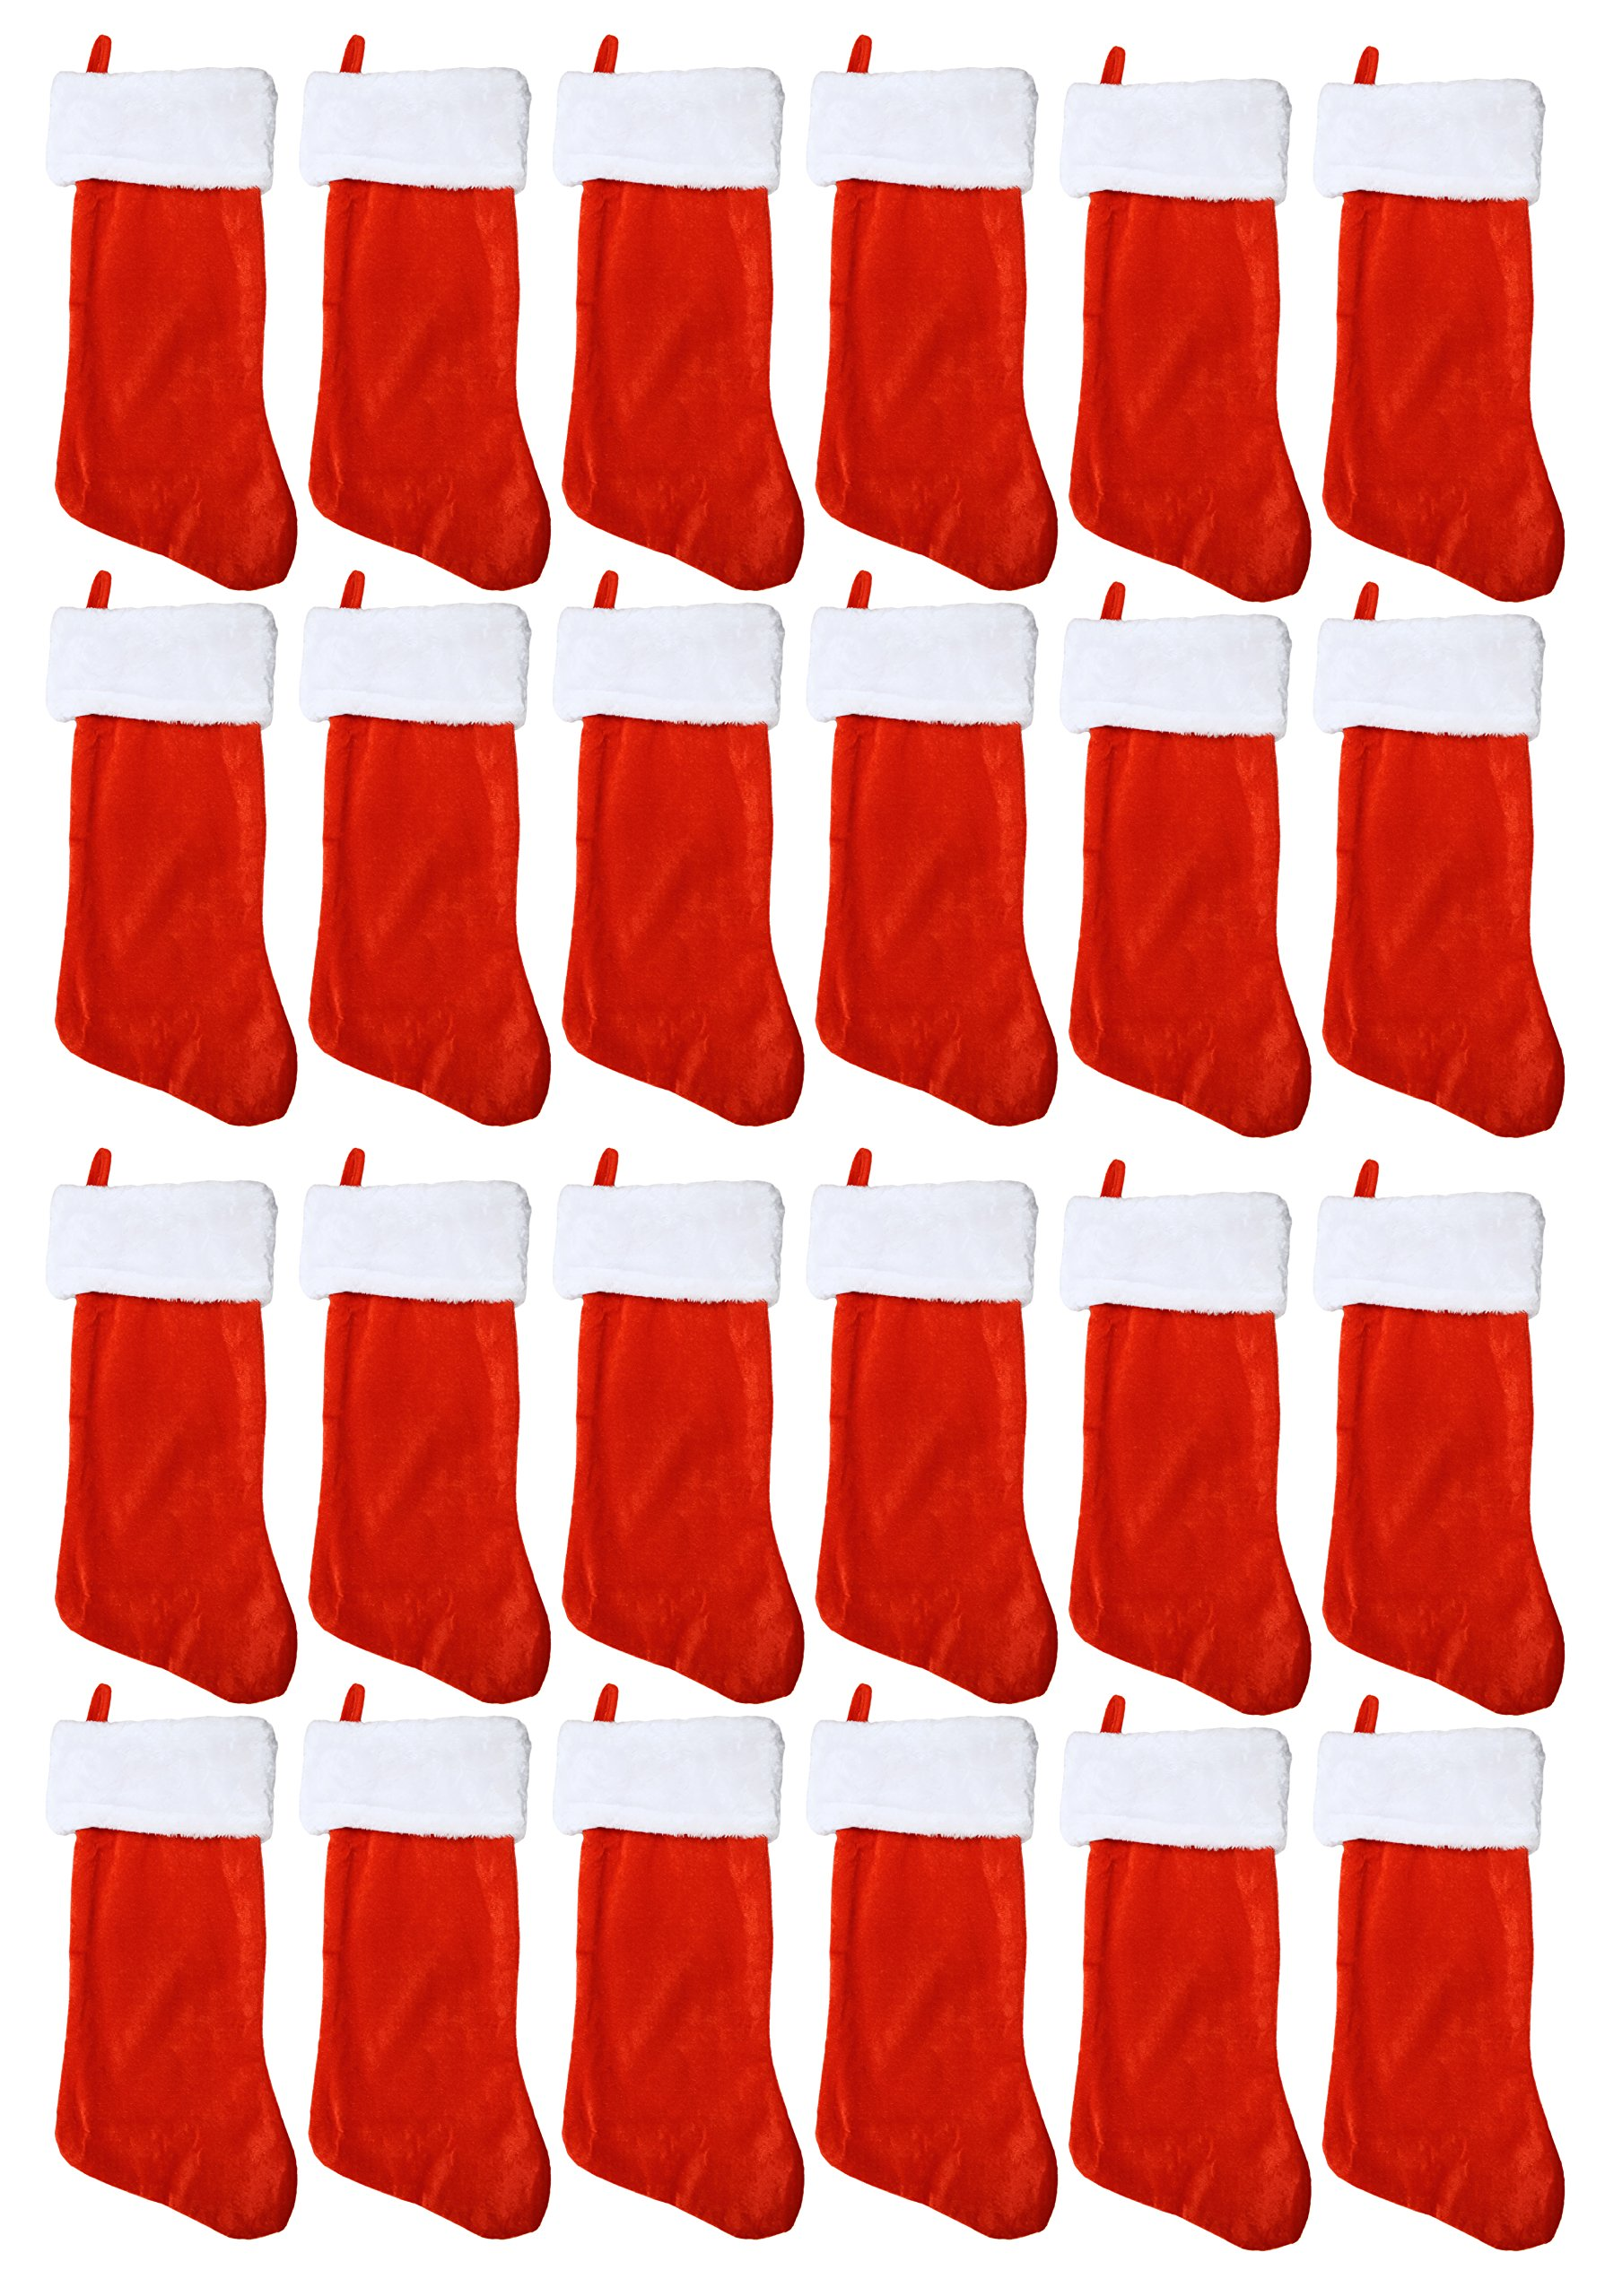 Set of 24 Christmas 19'' Red Velvet Stockings W/ White Plush Cuff & Hanging Tag (24)